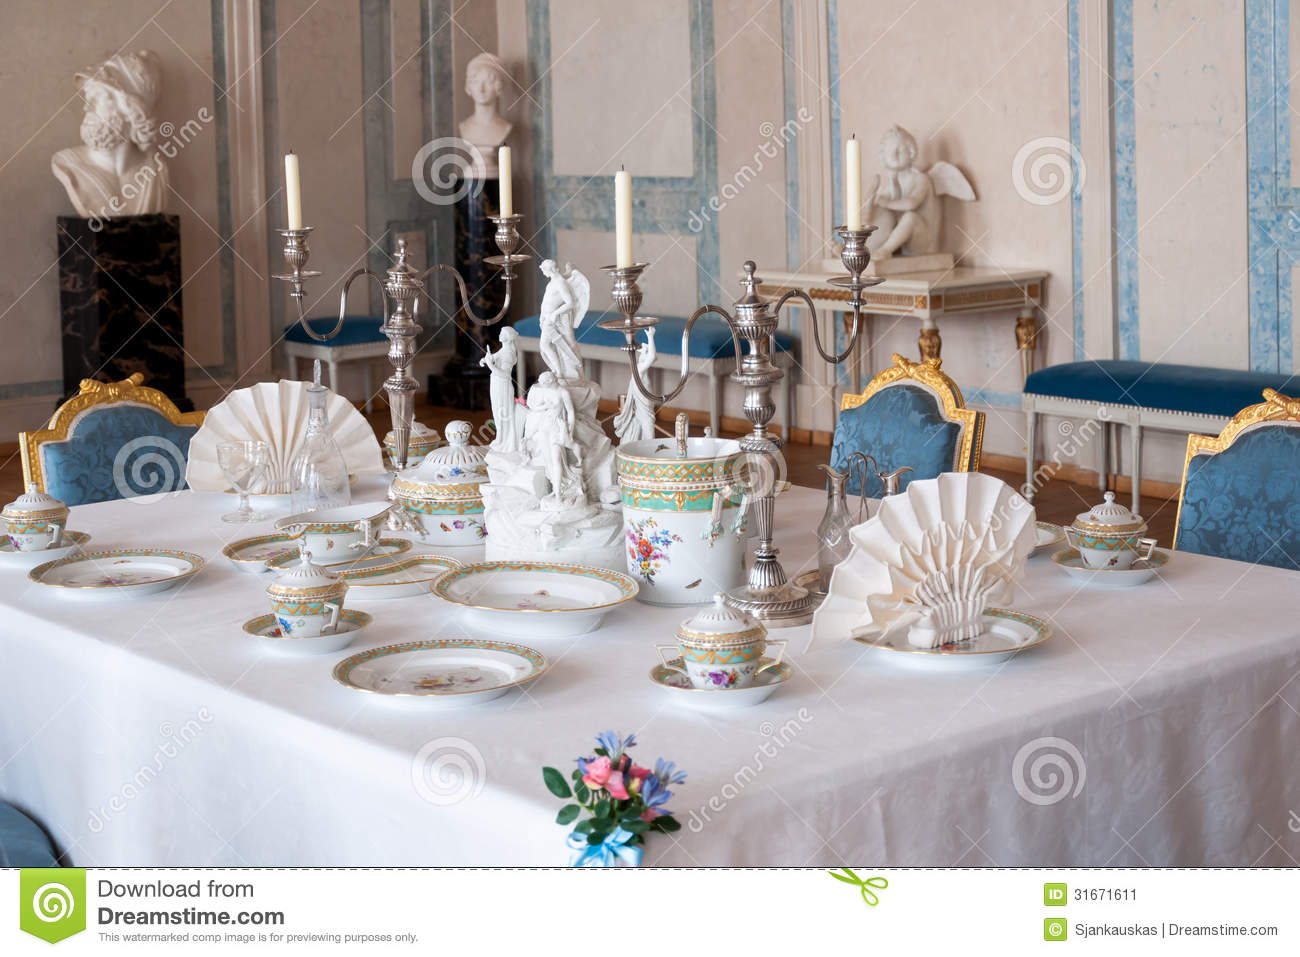 Dining room table setting royalty free stock image 69696664 - Dining room table settings ...